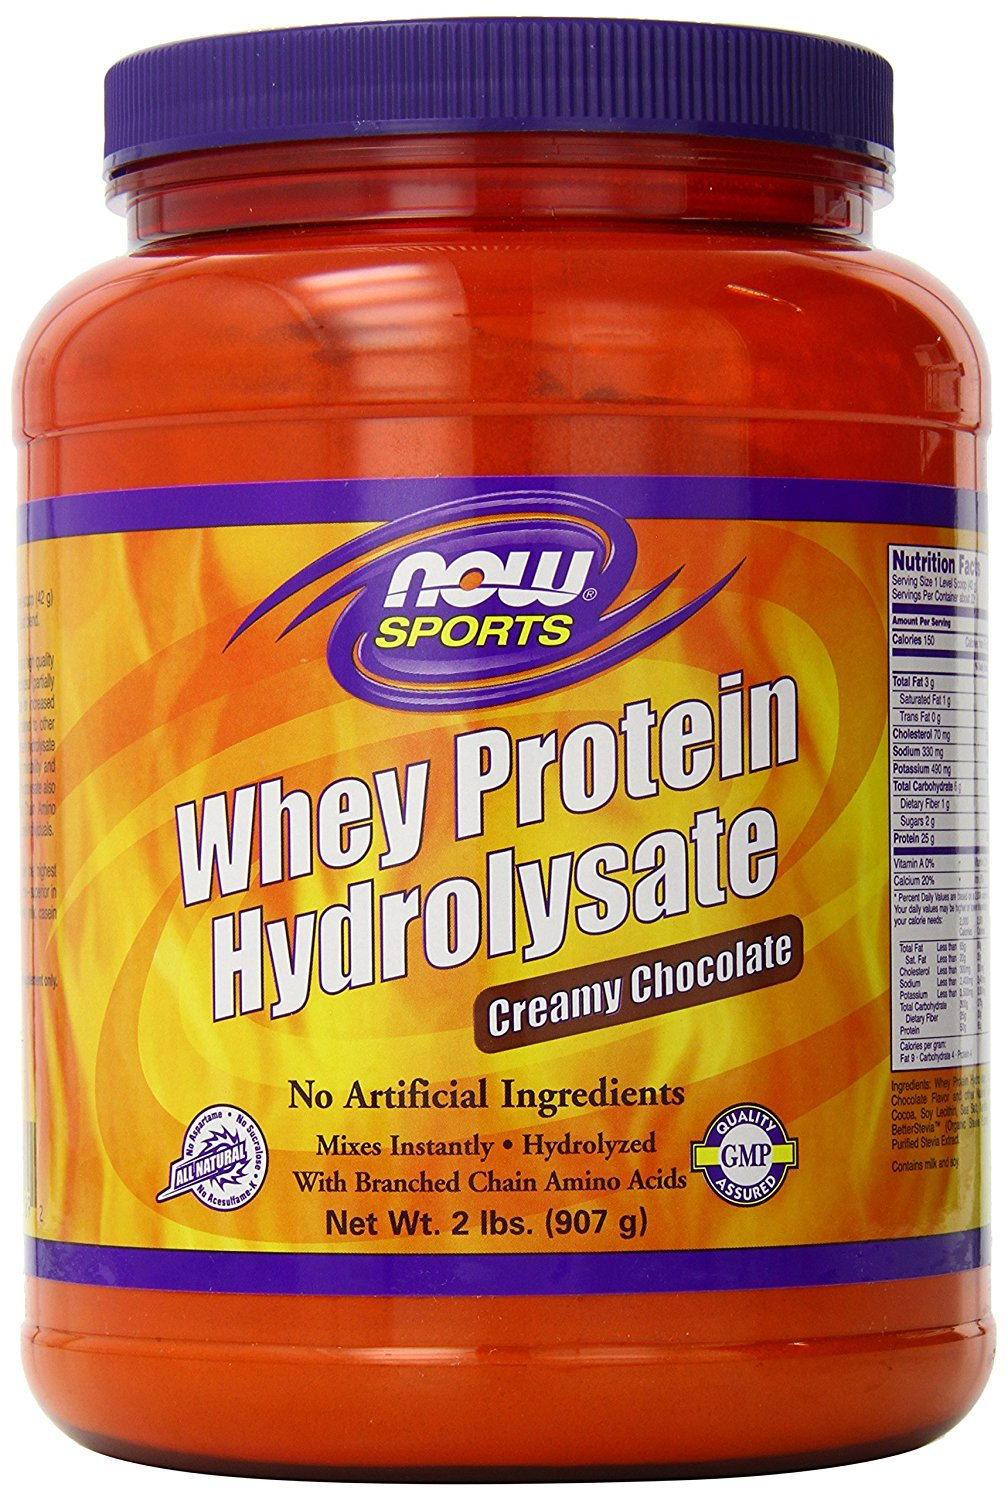 NOW Foods Whey Protein Hydrolysate Creamy Chocolate